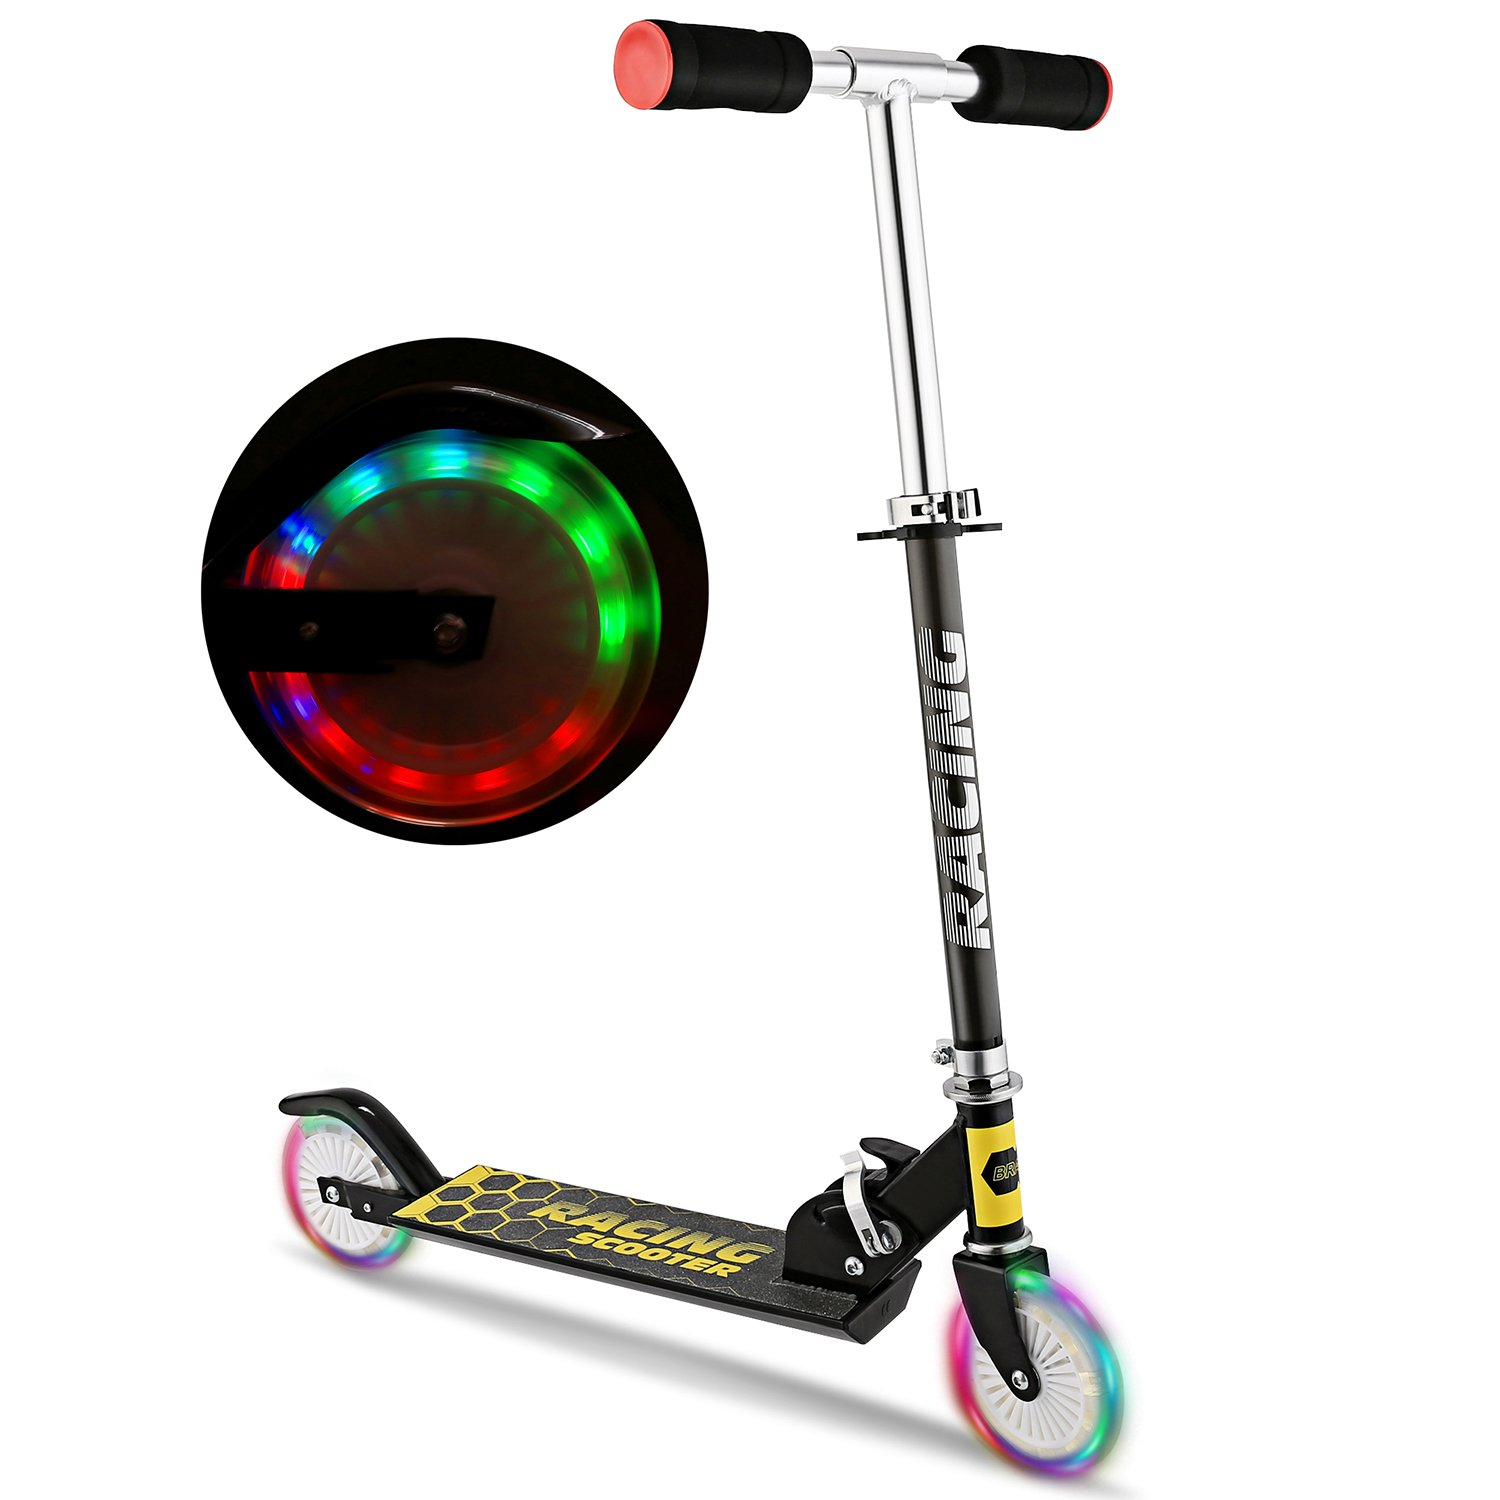 WeSkate B3 Scooter for Kids with LED Light Up Wheels, Adjustable Height Kick Scooters for Boys and Girls, Rear Fender Break|5lb Lightweight Folding Kids Scooter, 110lb Weight Capacity (Black/B3/FBA) by WeSkate